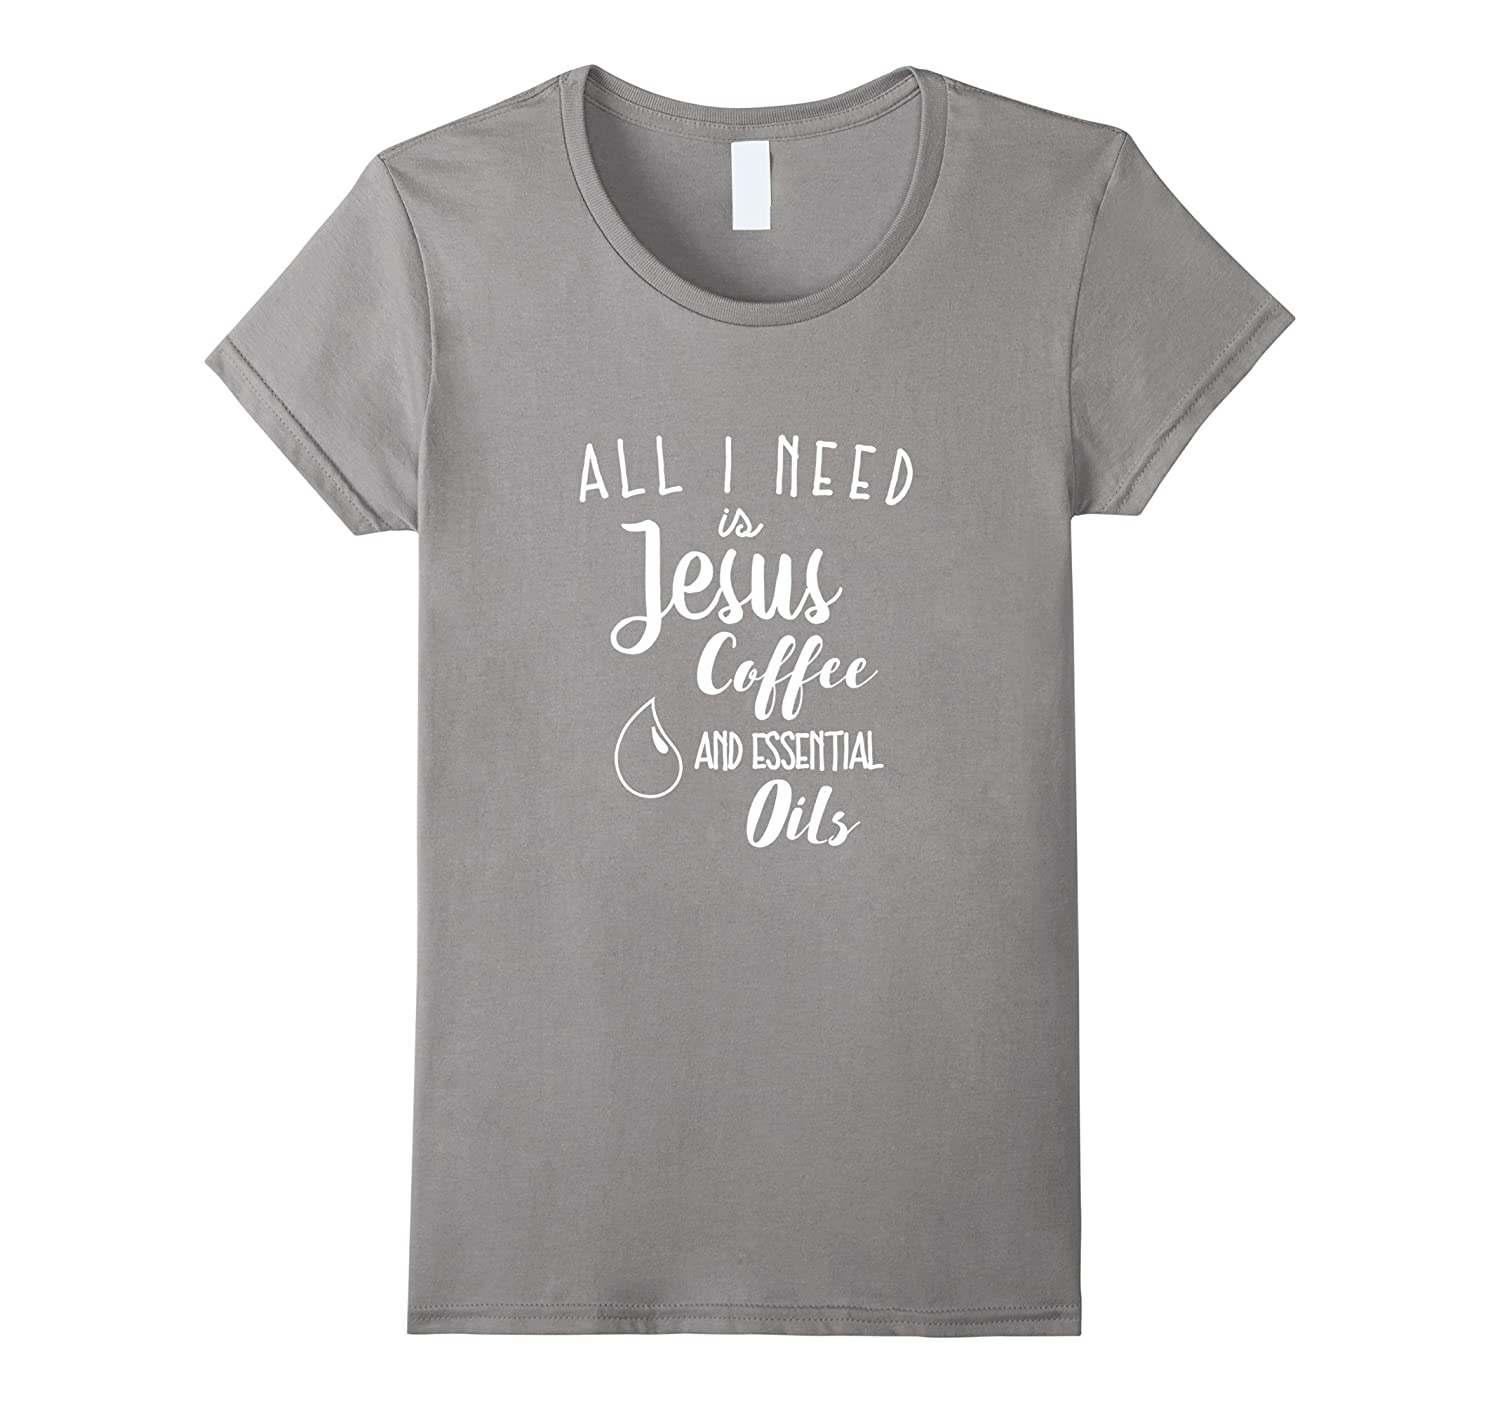 All I need is Jesus Coffee and Essential Oils Shirt